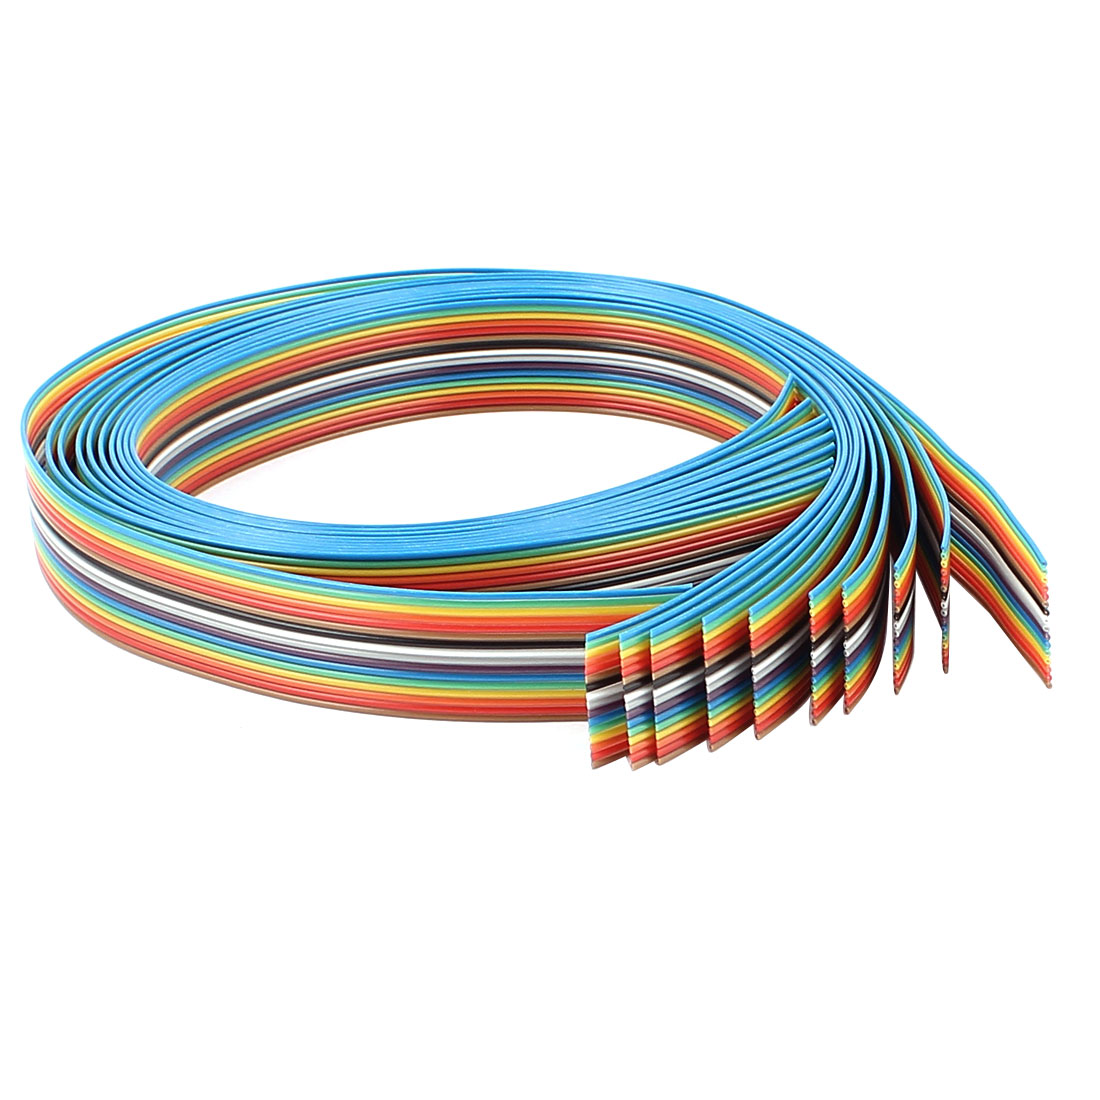 10 Pcs 400mm Long 16-Pin Rainbow Color Flat Ribbon Cable IDC Wire